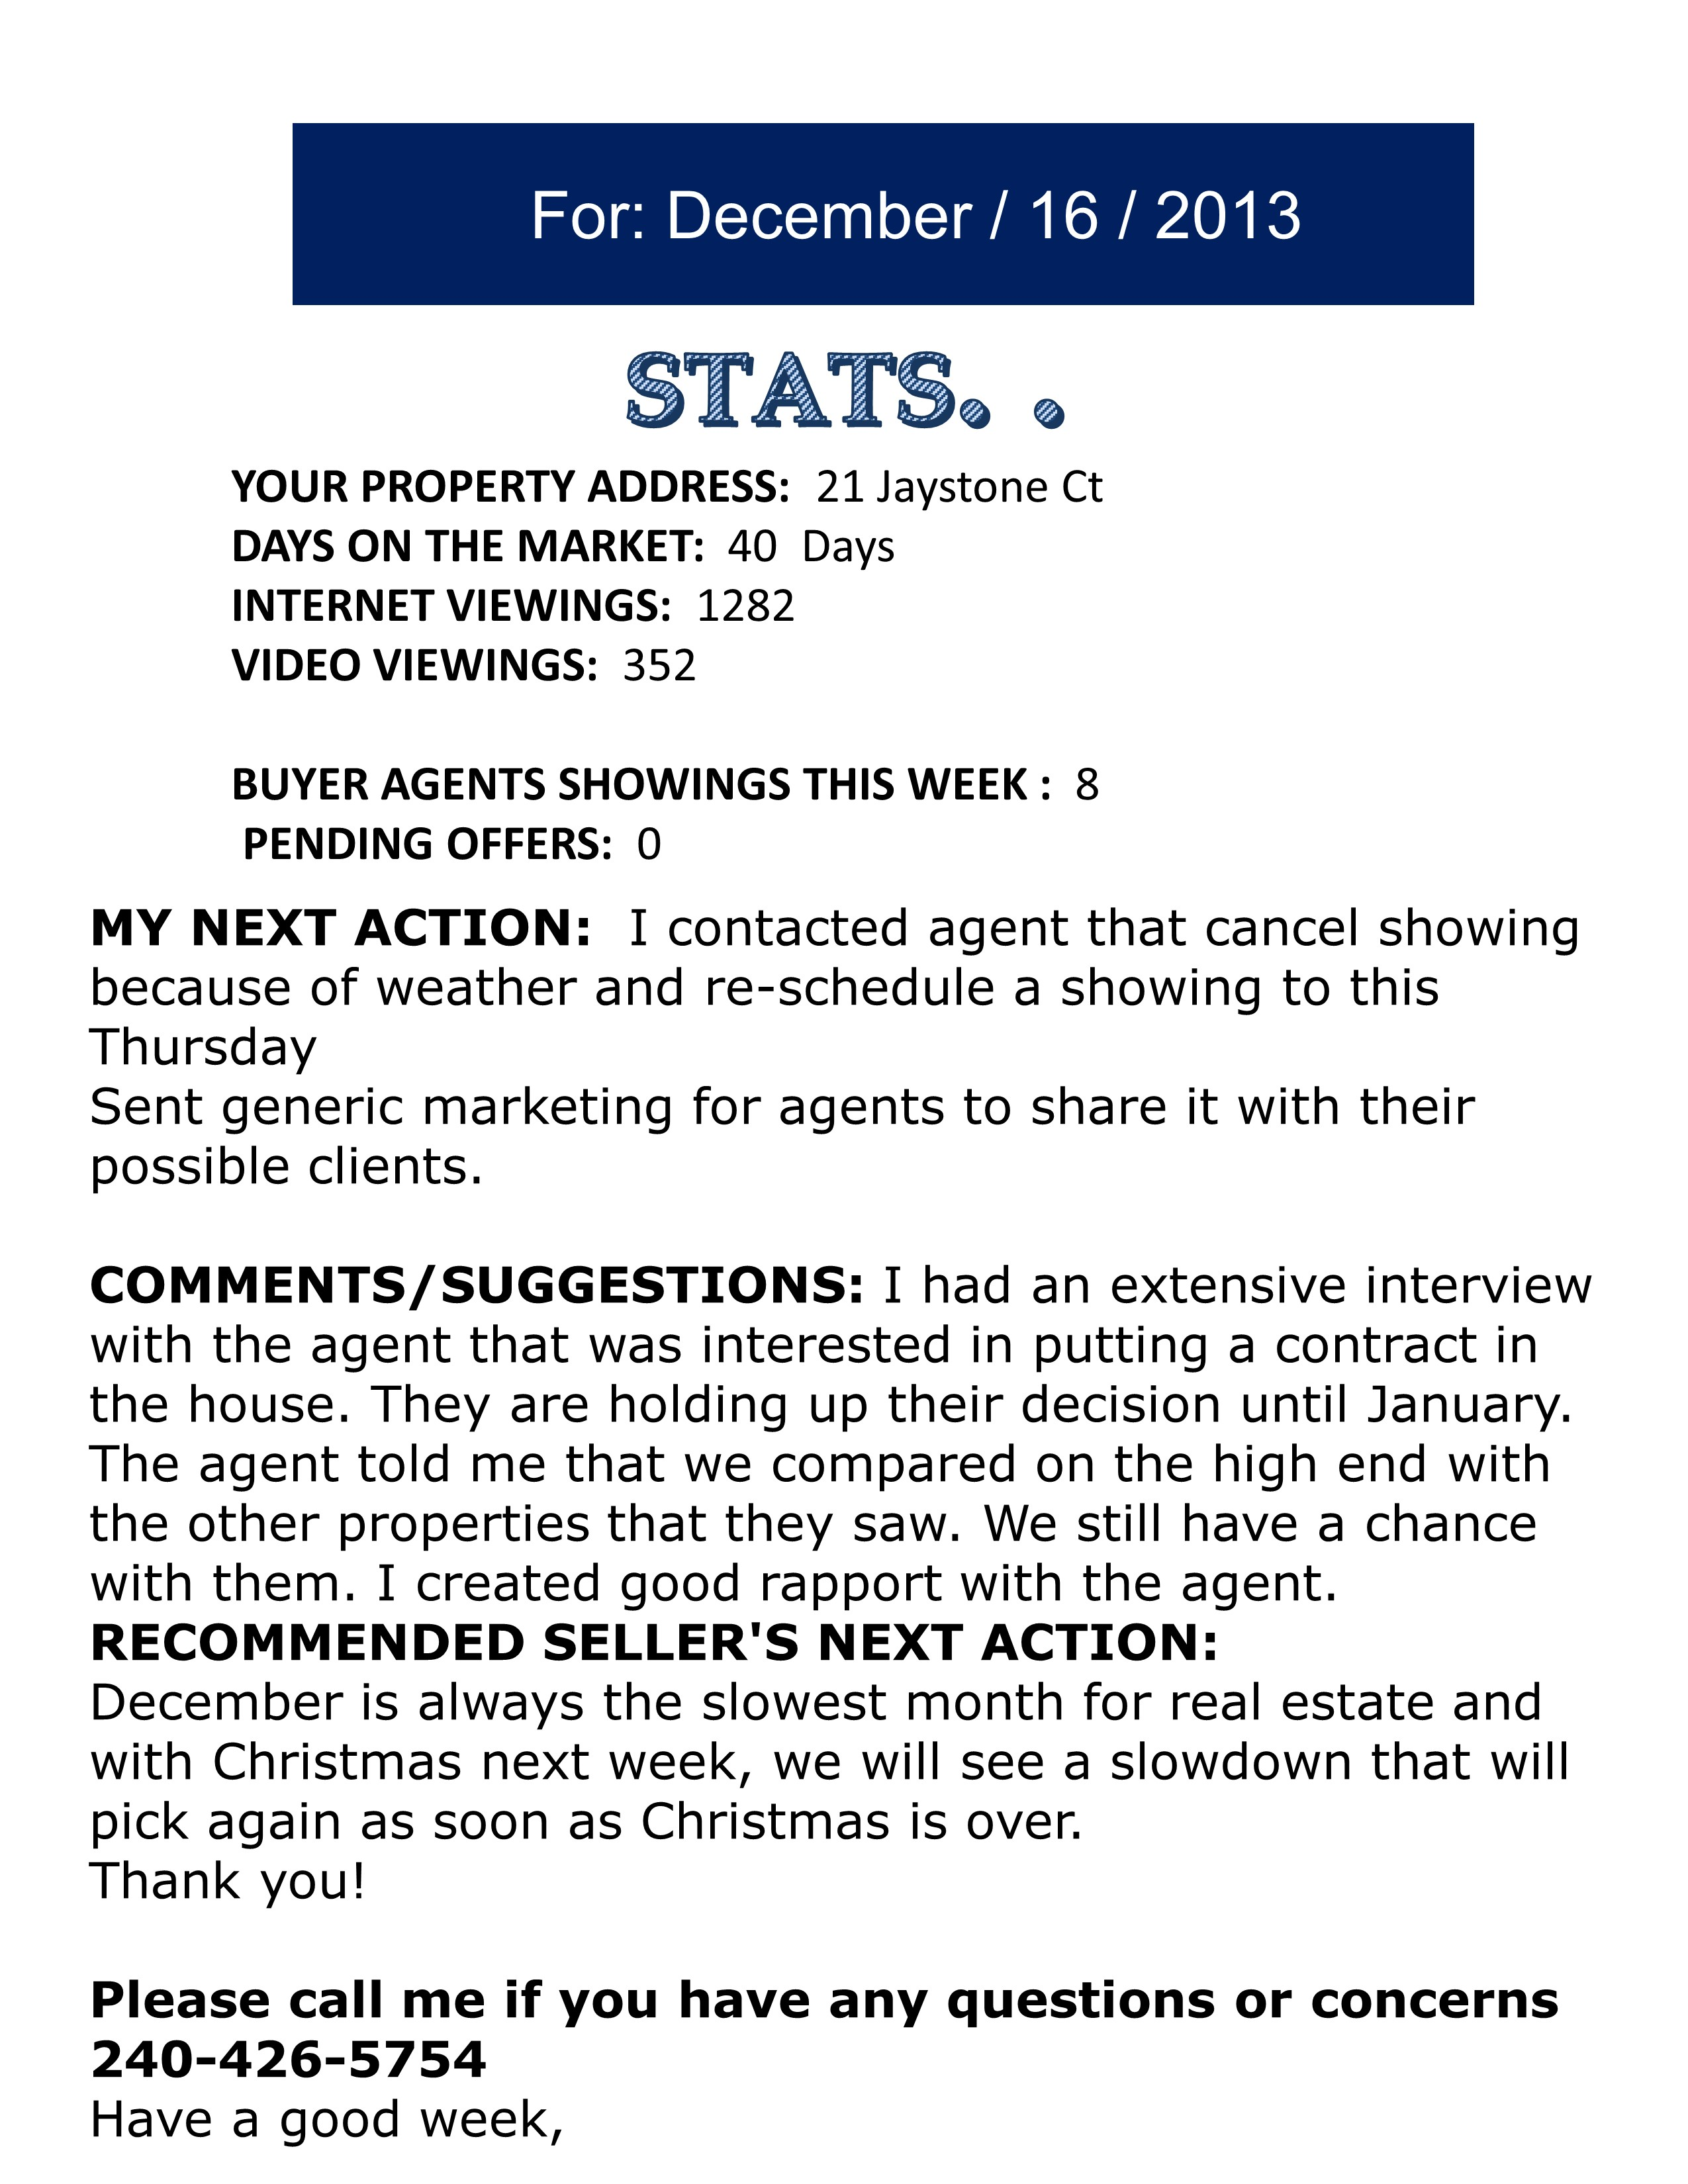 Sample Our Weekly Feedback Report To Our Sellers – Sample of Weekly Report